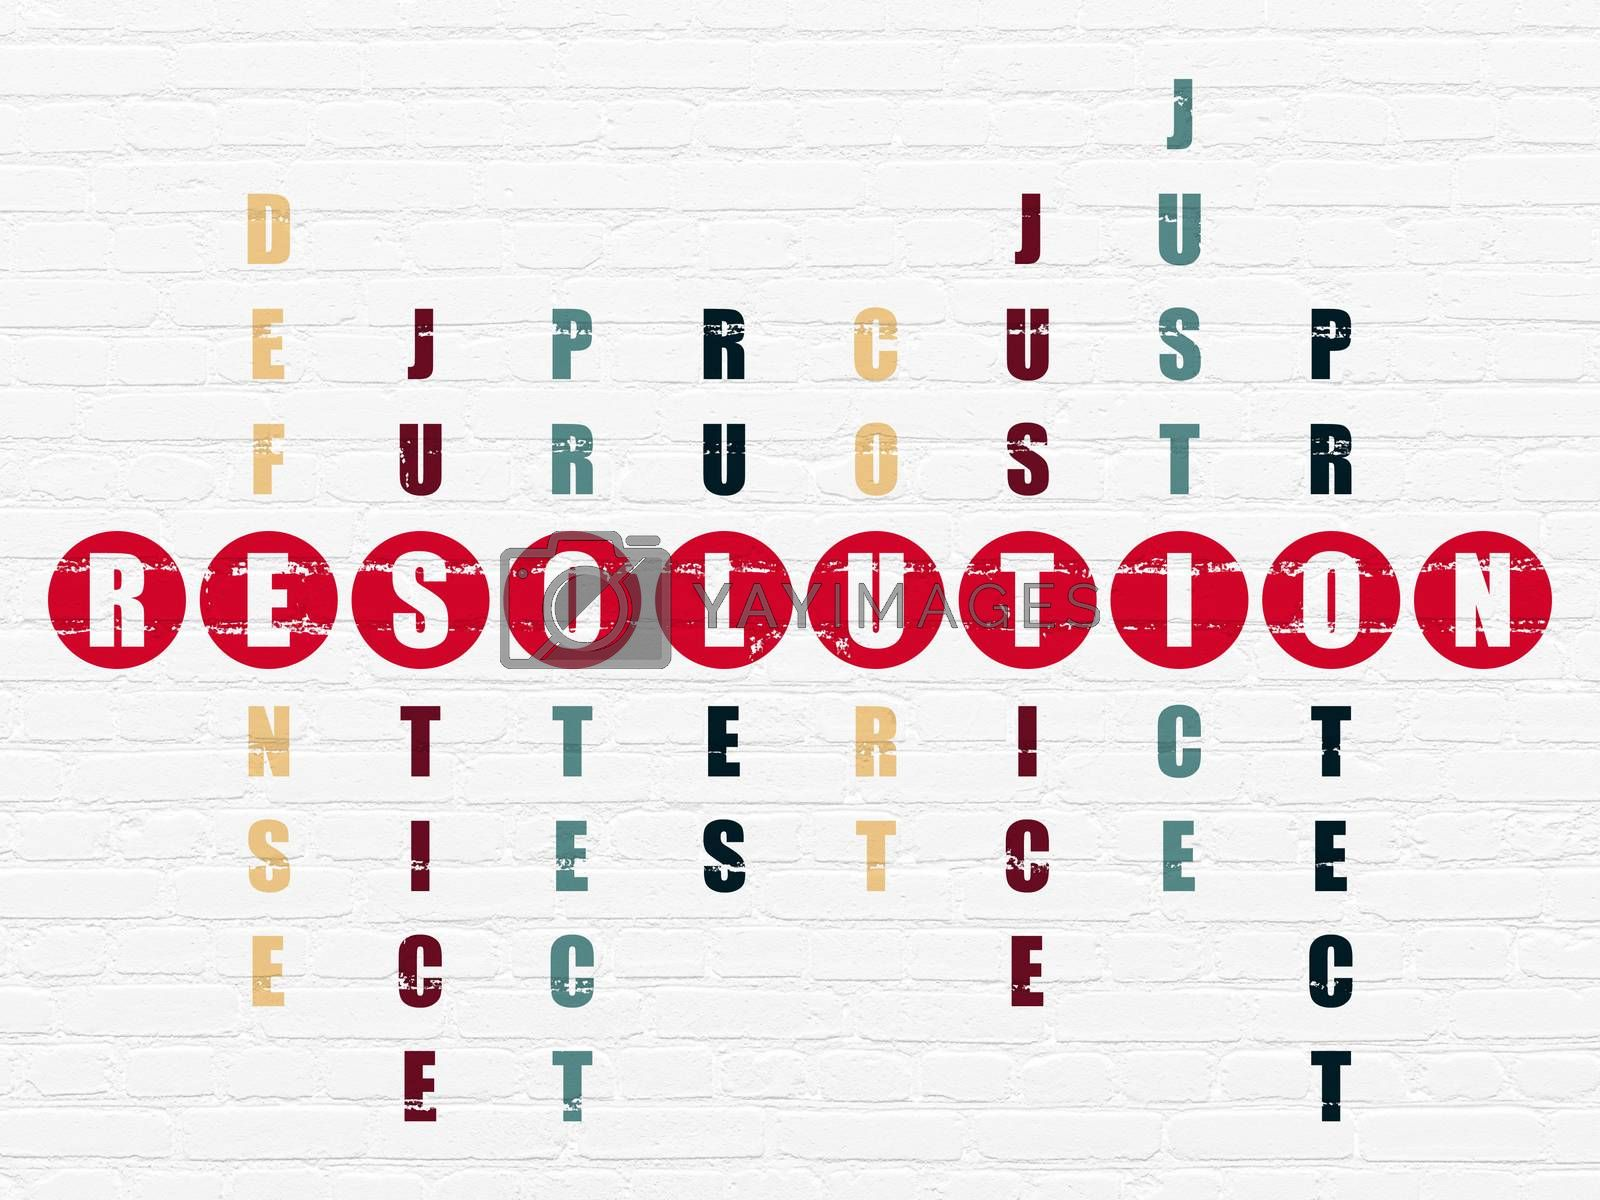 Law concept: Resolution in Crossword Puzzle by maxkabakov